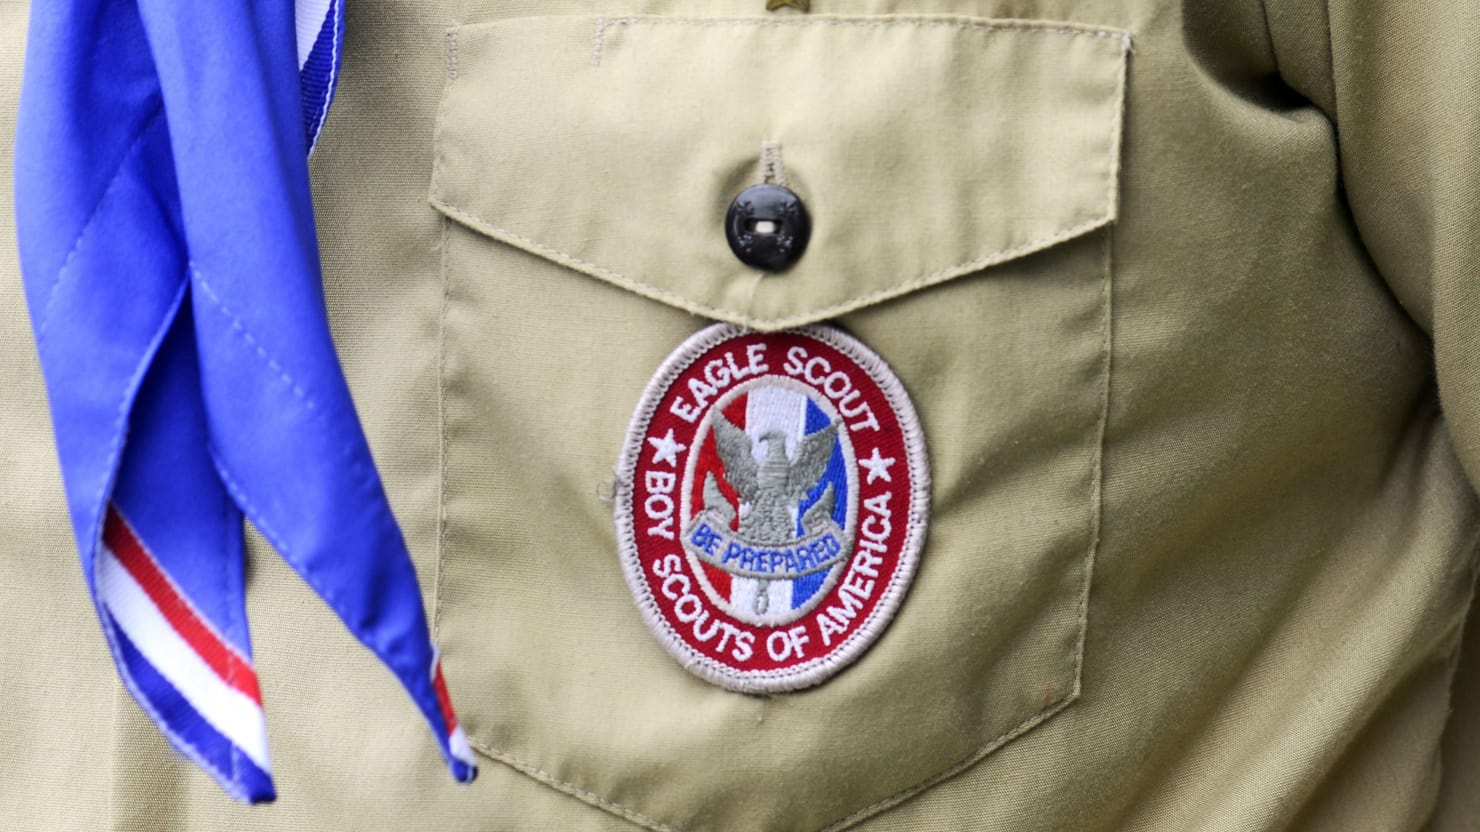 Boy Scouts to Welcome Girls Into Its Cub Scout Program